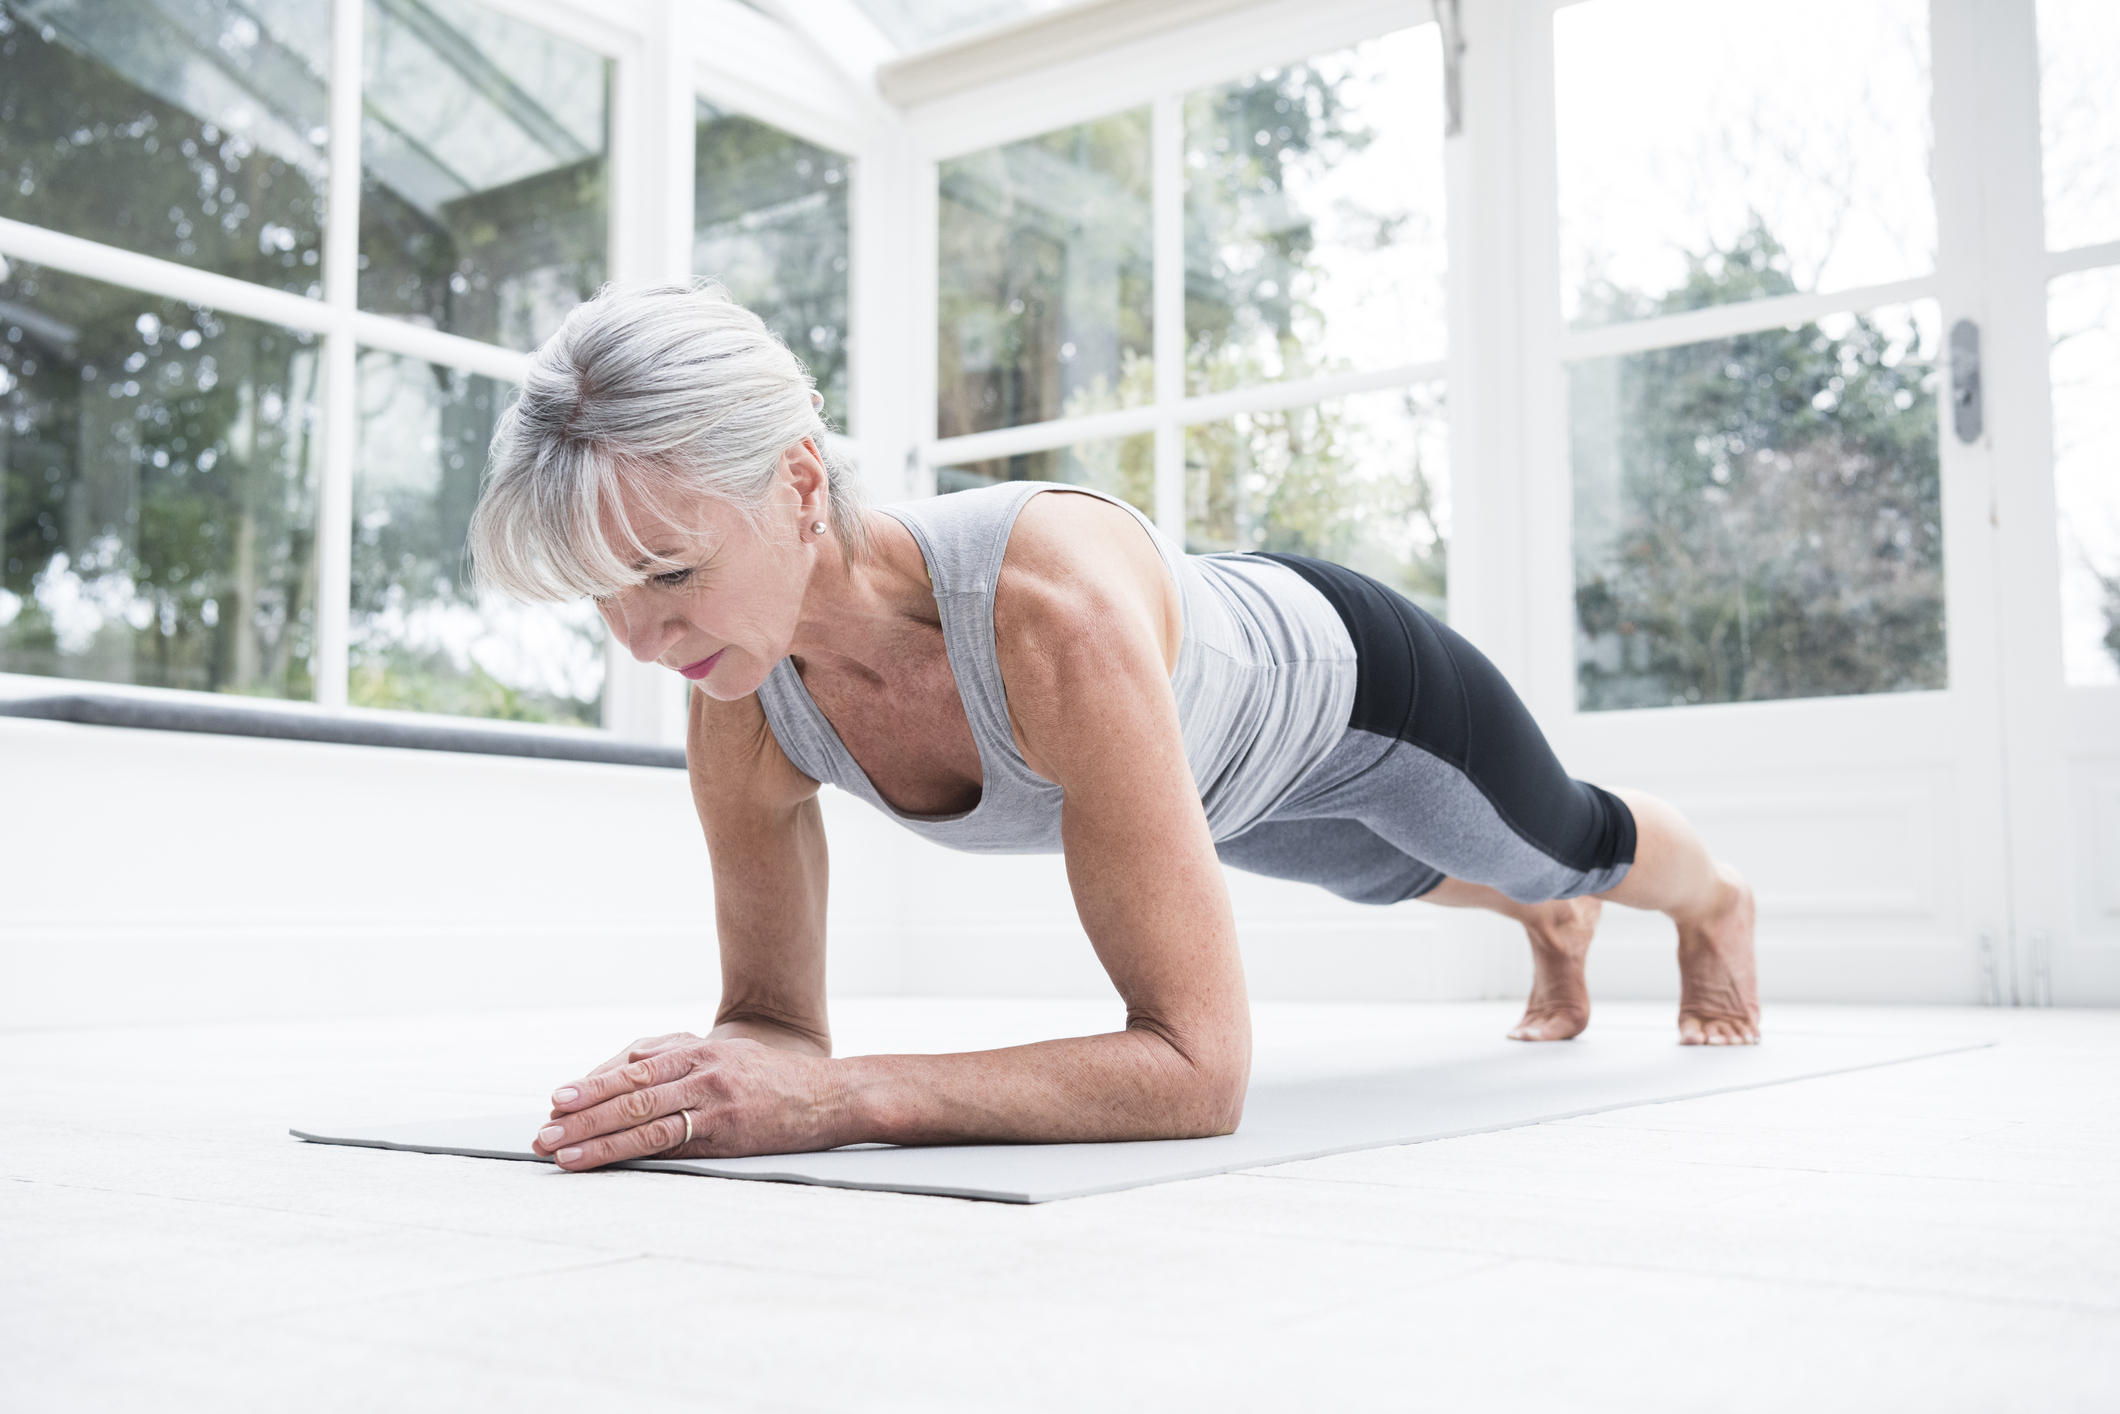 Plank Exercise For Back Pain